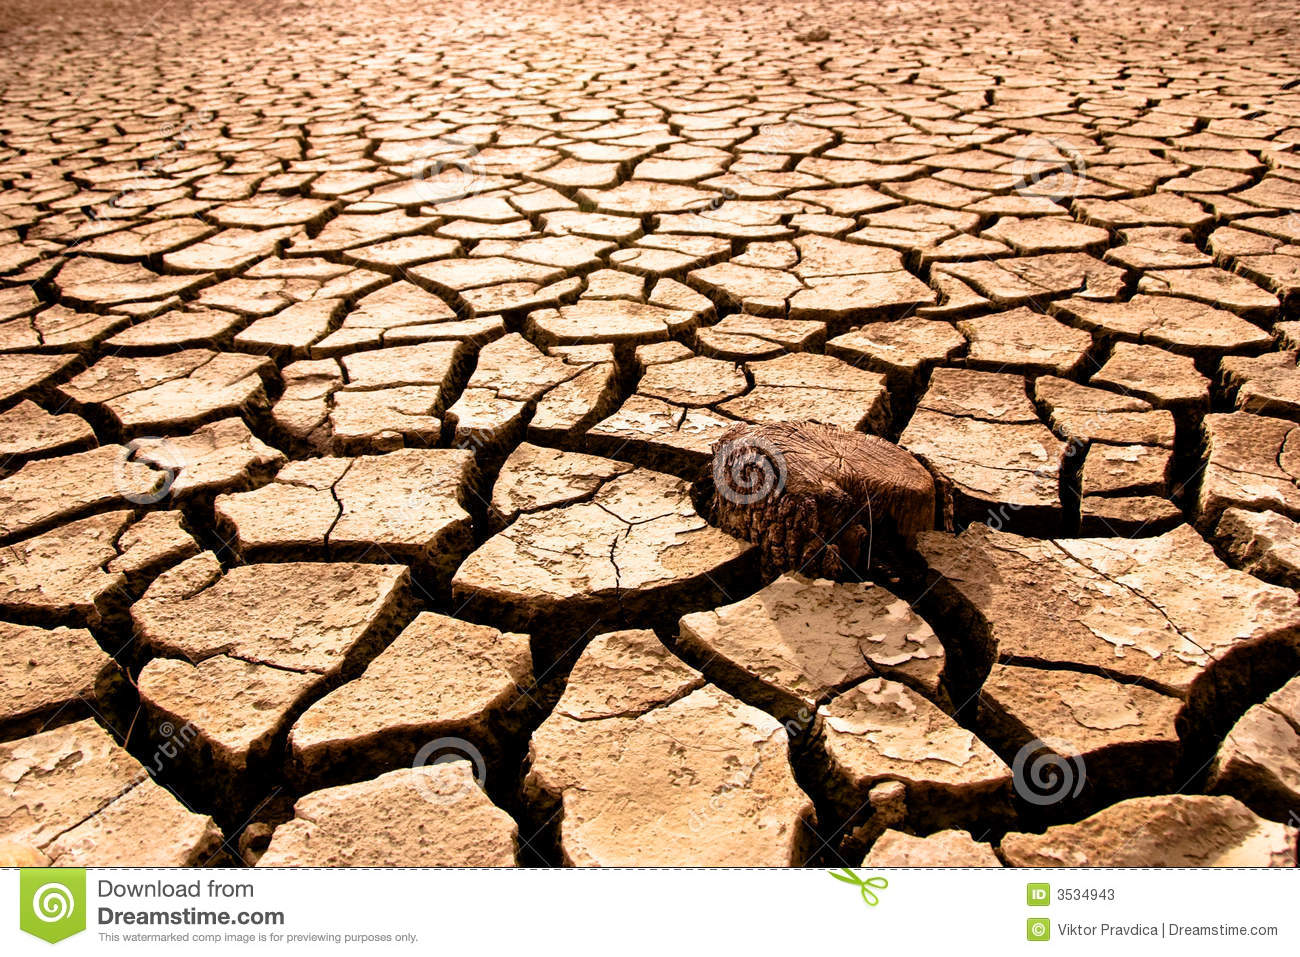 Cracked Earth Stock Photos - Image: 3534943